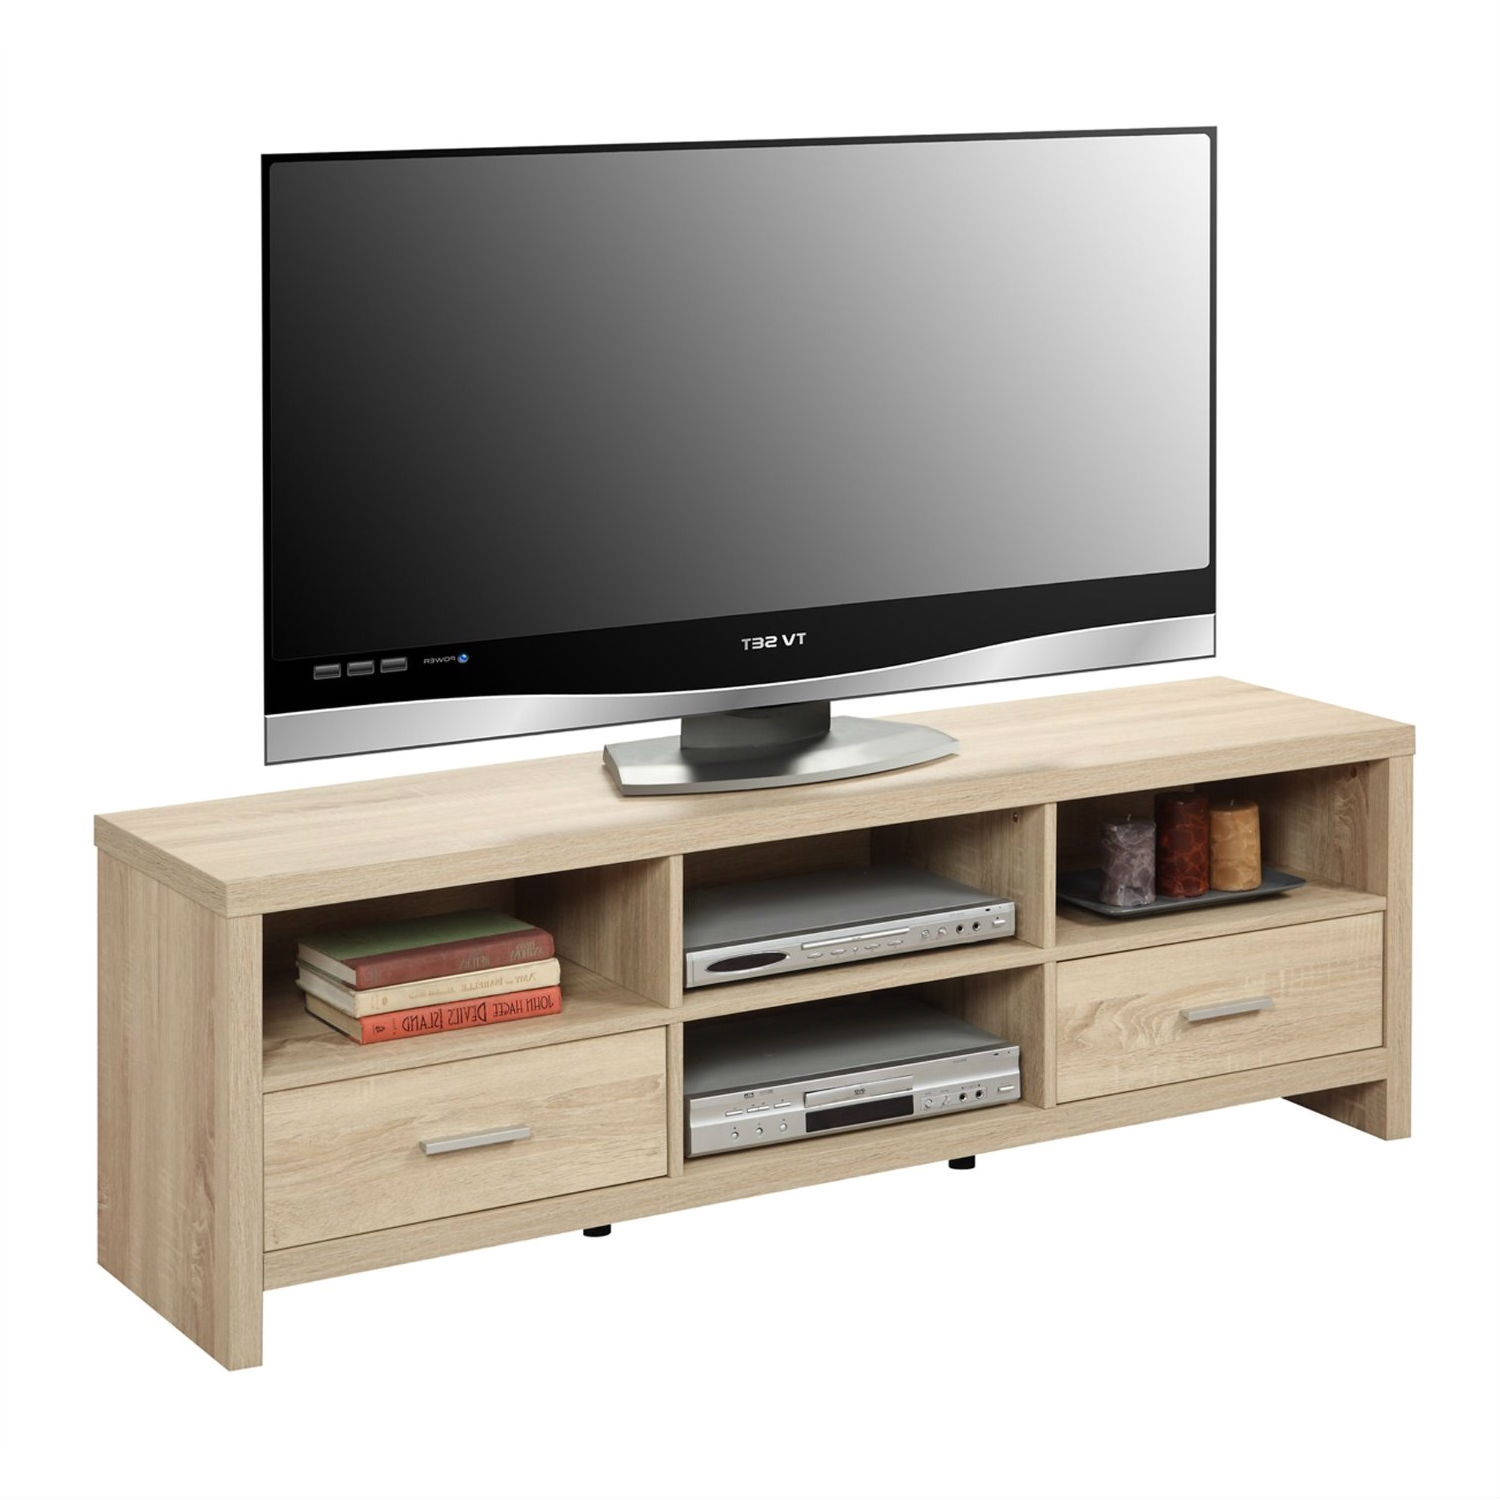 Light Wood Grain Modern 60 Inch Tv Stand Entertainment Center